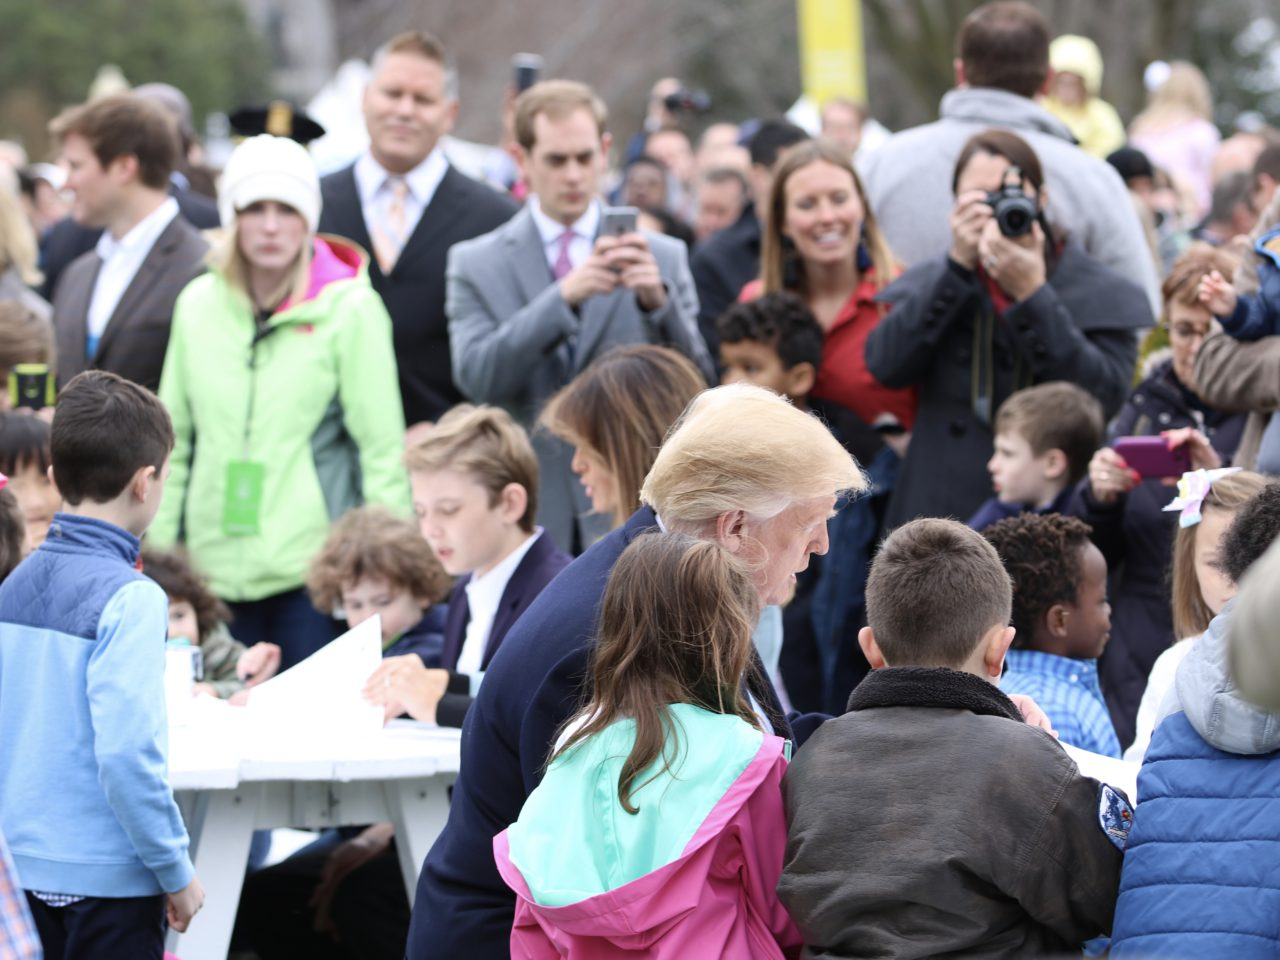 Breitbart President Trump, First Lady Melania, and their son Barron visit with children at the Easter Egg roll (Credit: Michelle Moons/Breitbart News)